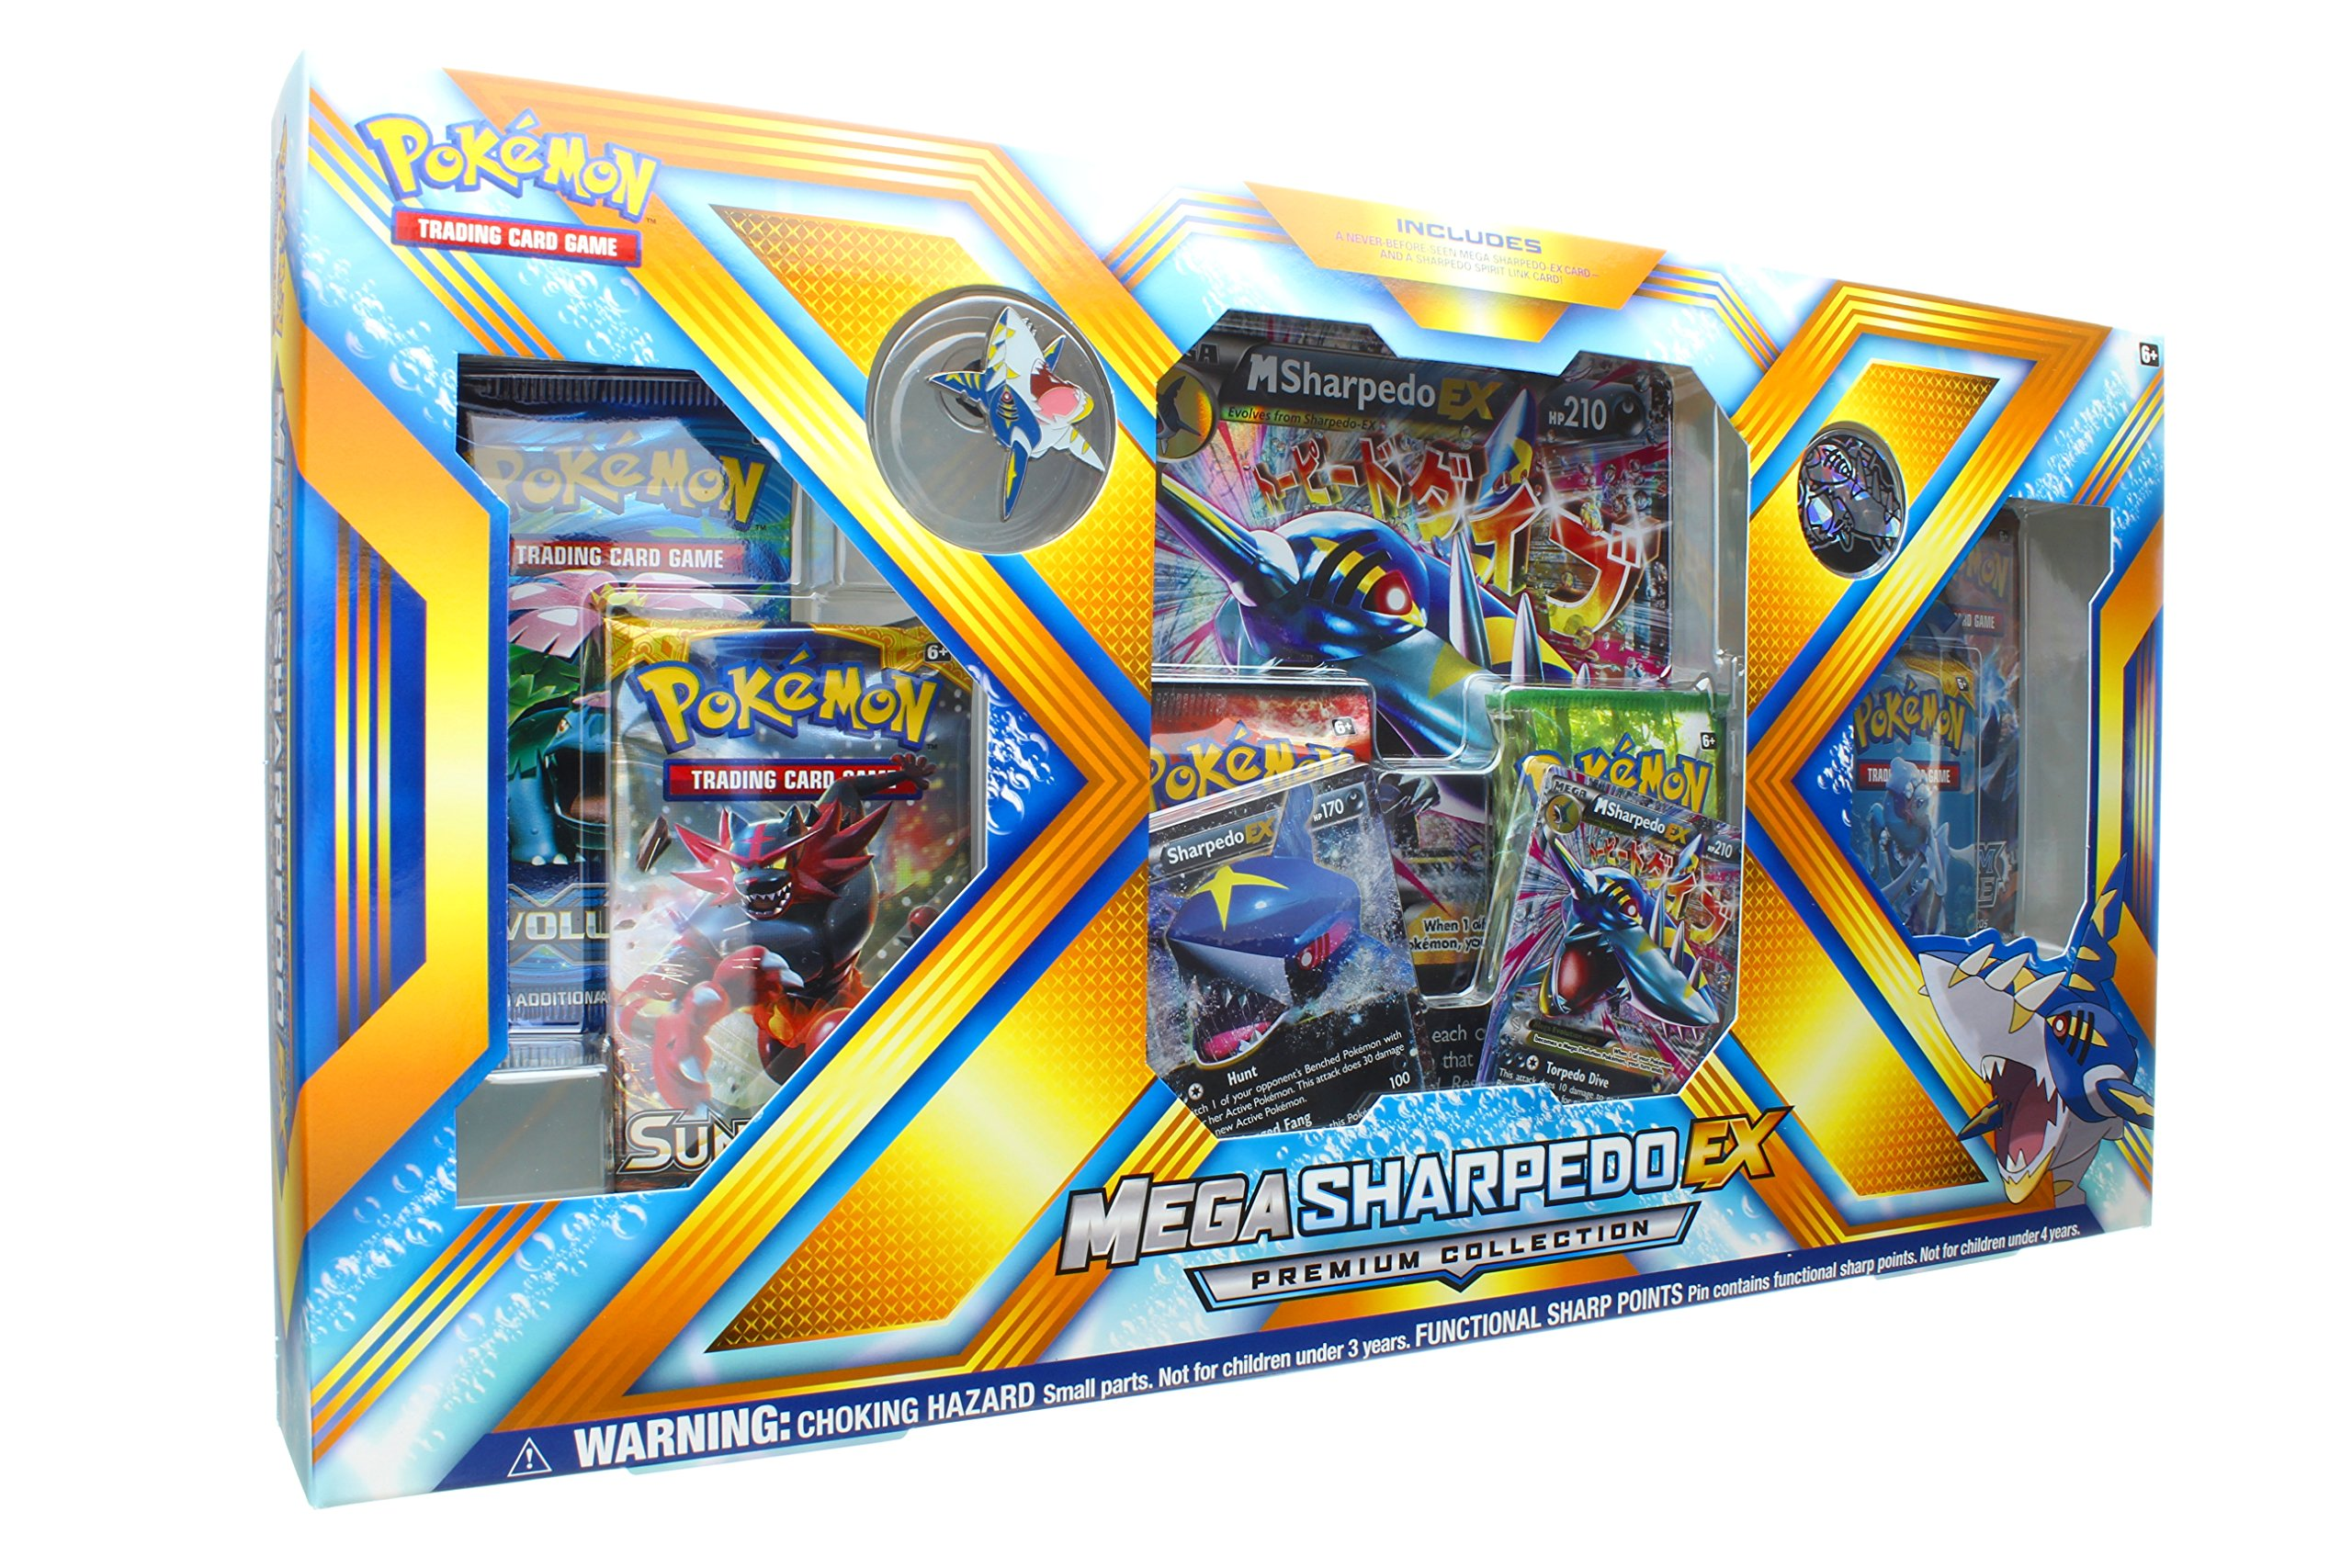 Pokemon TCG: Mega Sharpedo EX Premium Collection Box